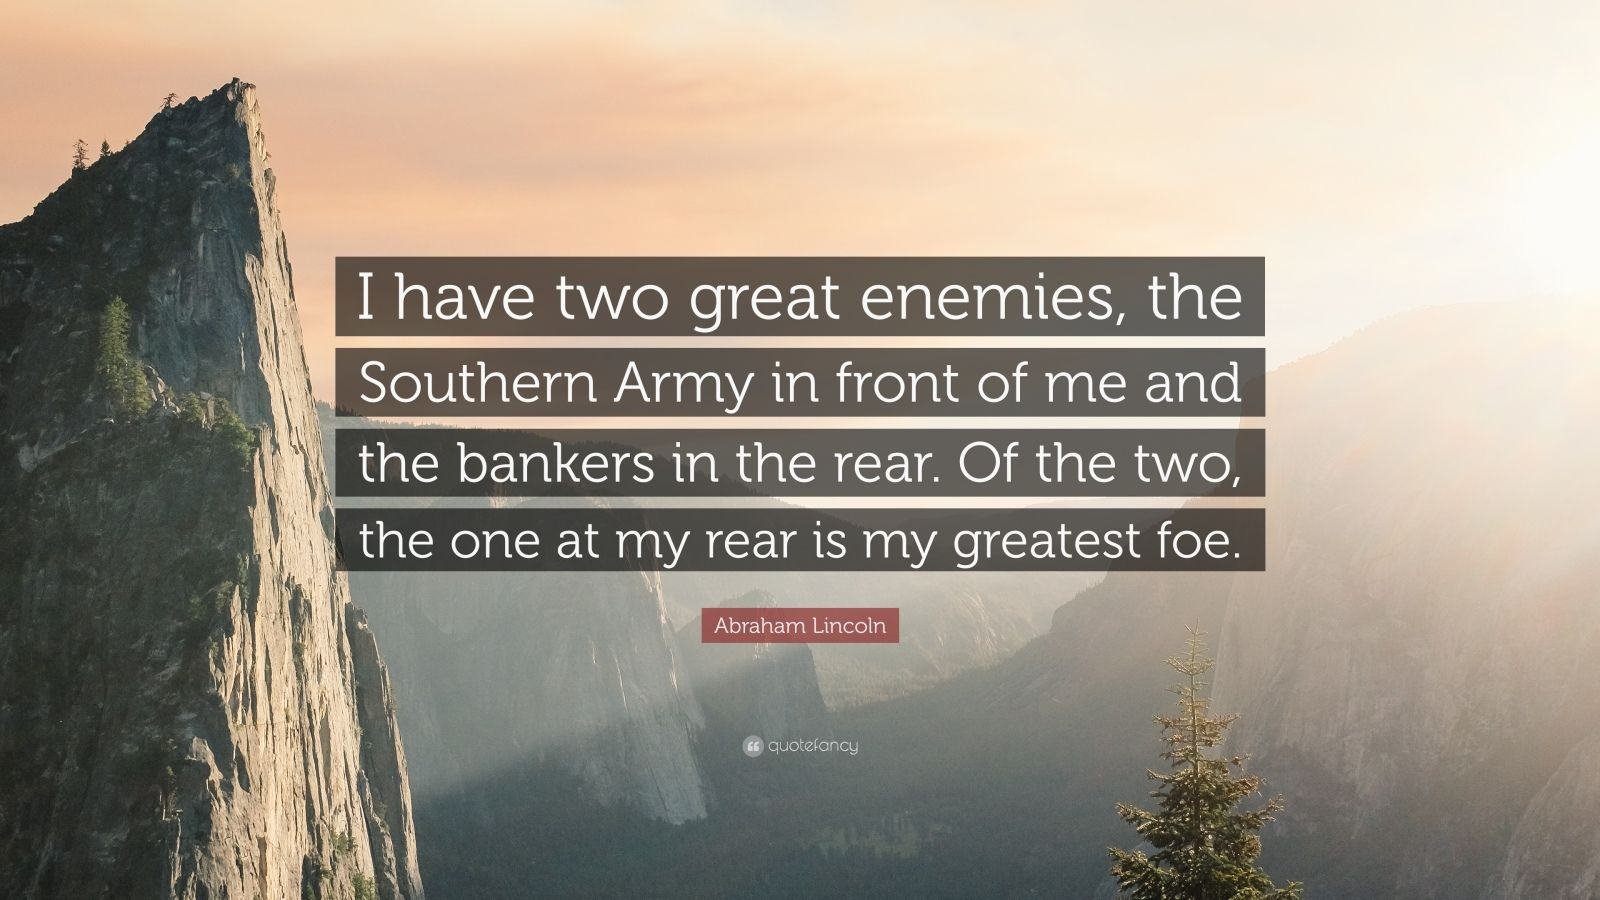 """Abraham Lincoln Quote: """"I have two great enemies, the Southern Army in front of me and the bankers in the rear. Of the two, the one at my rear is my greatest foe."""""""